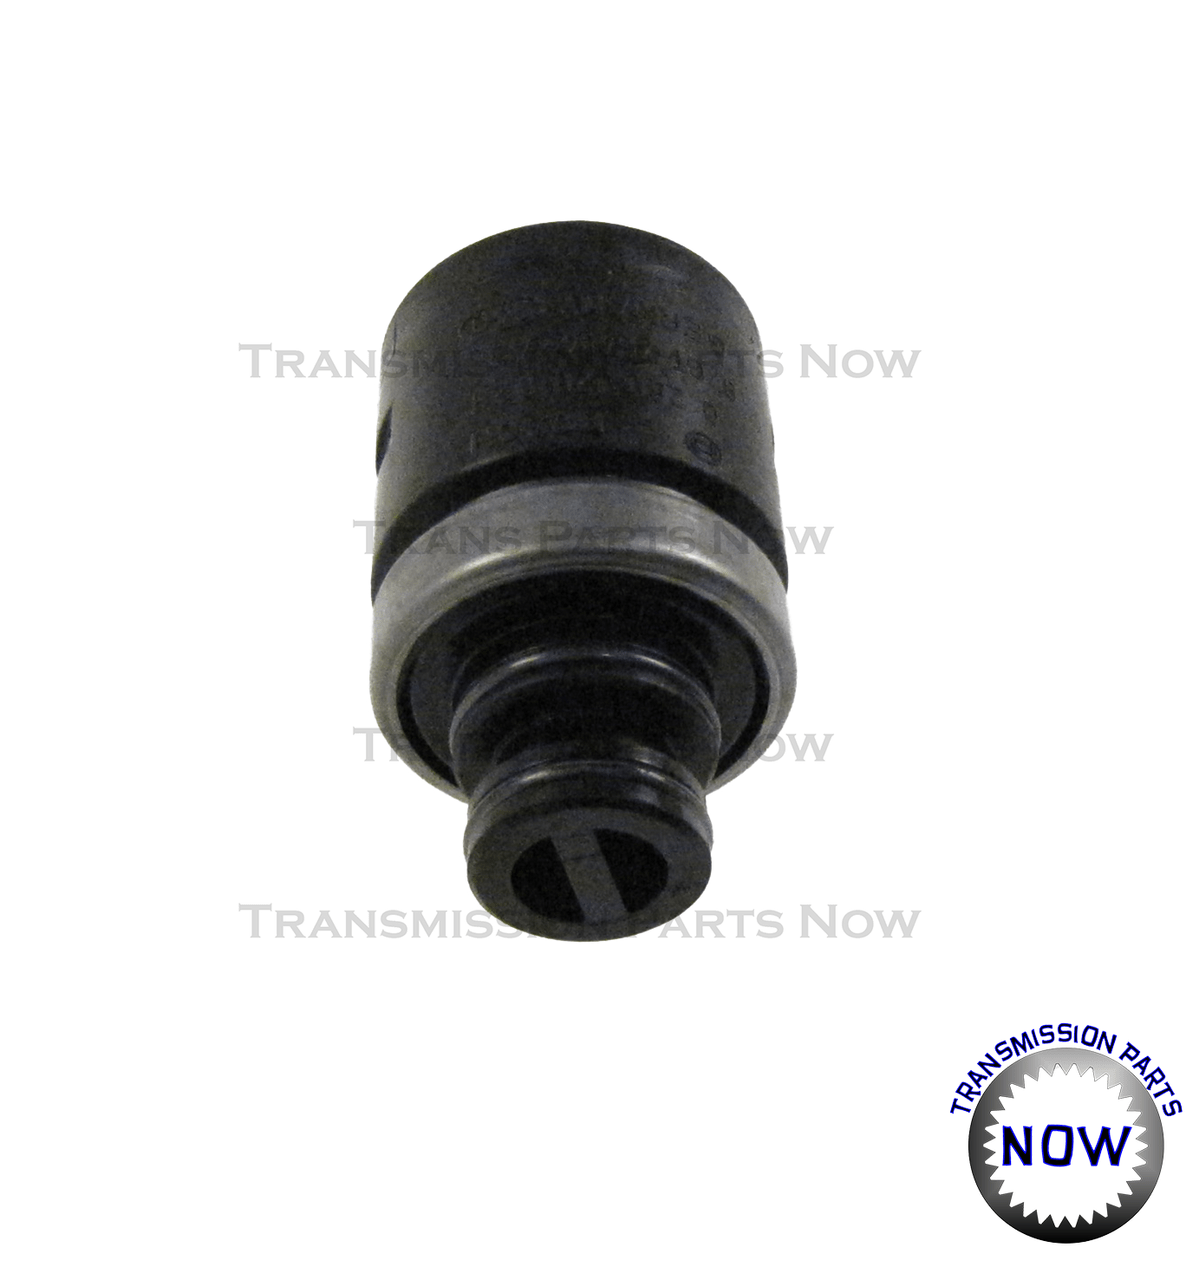 hight resolution of shift coast clutch solenoid 4r55e 5r55e 95 up transmission further toyota pickup transmission diagram on 4r55e solenoid diagram